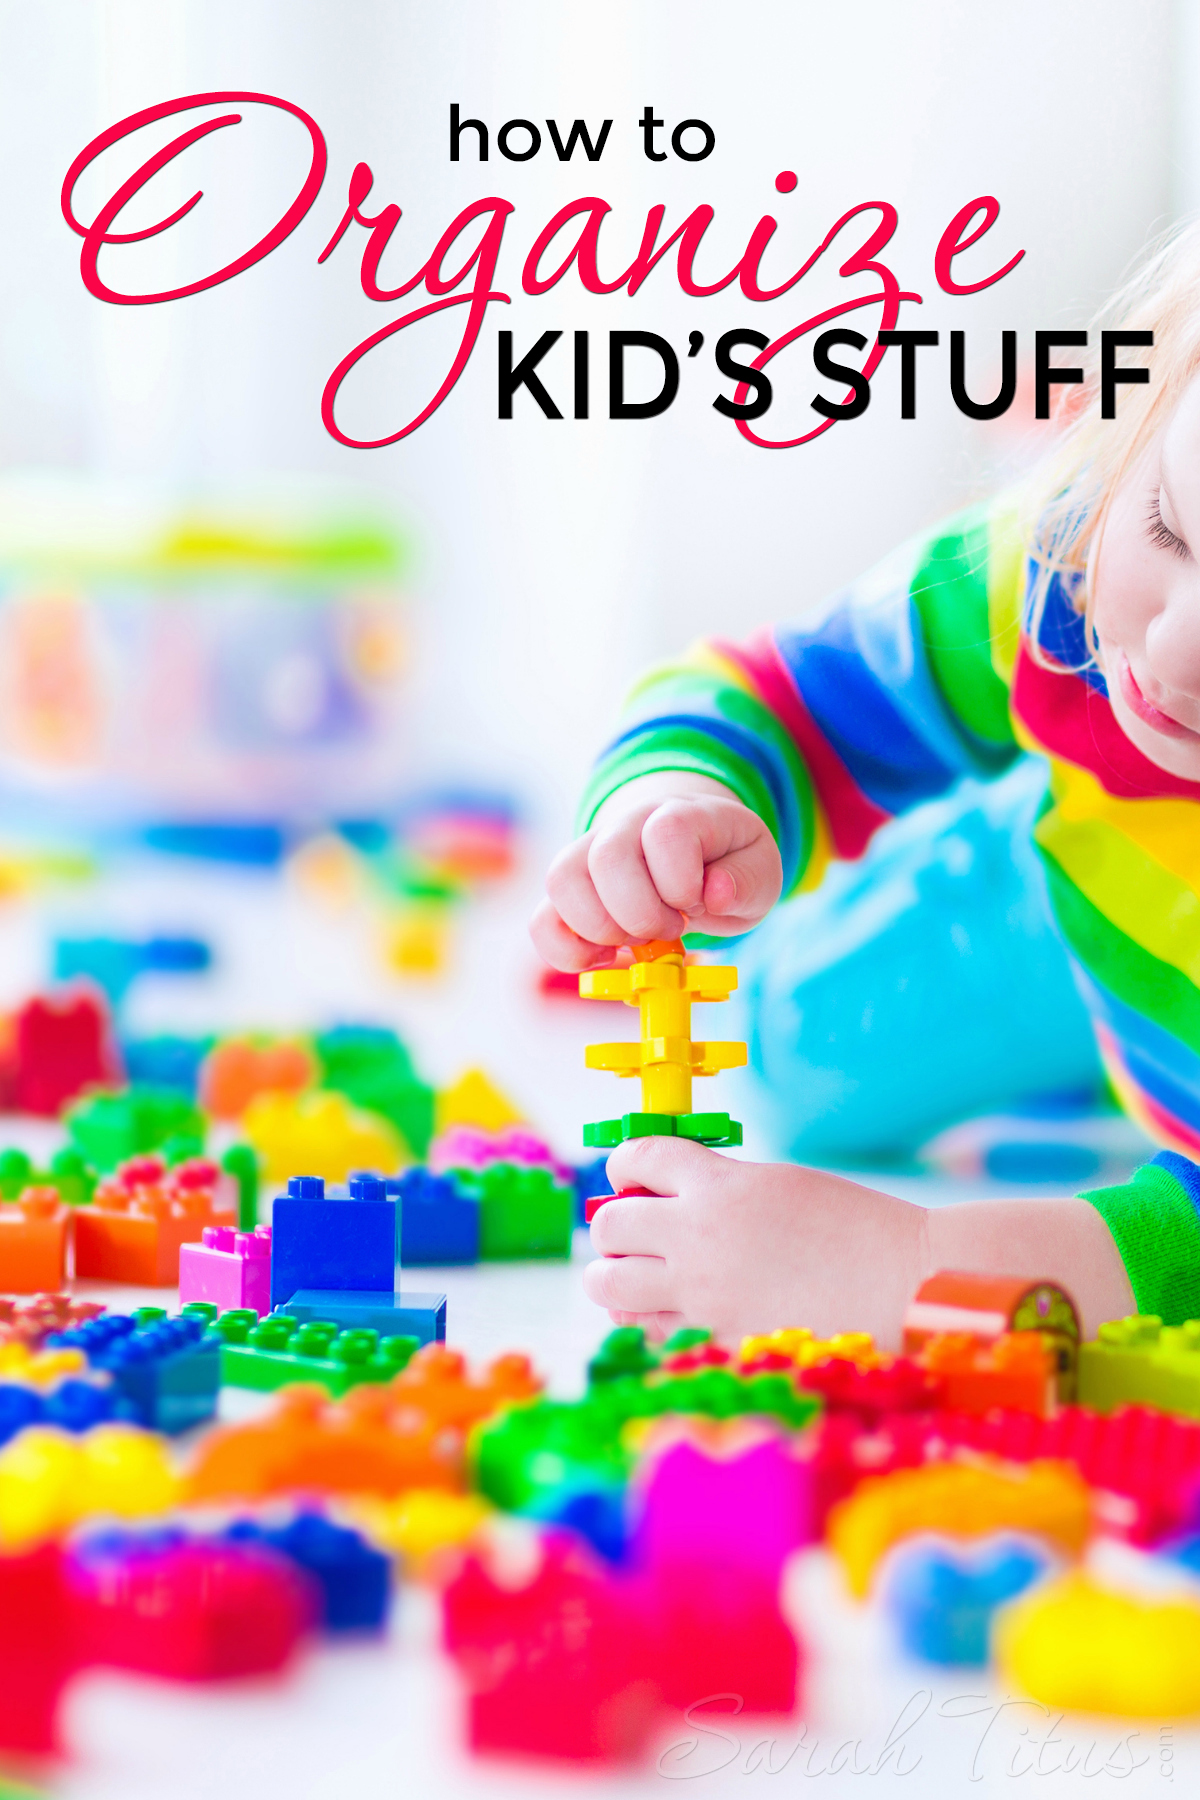 How to Organize Kid's Stuff